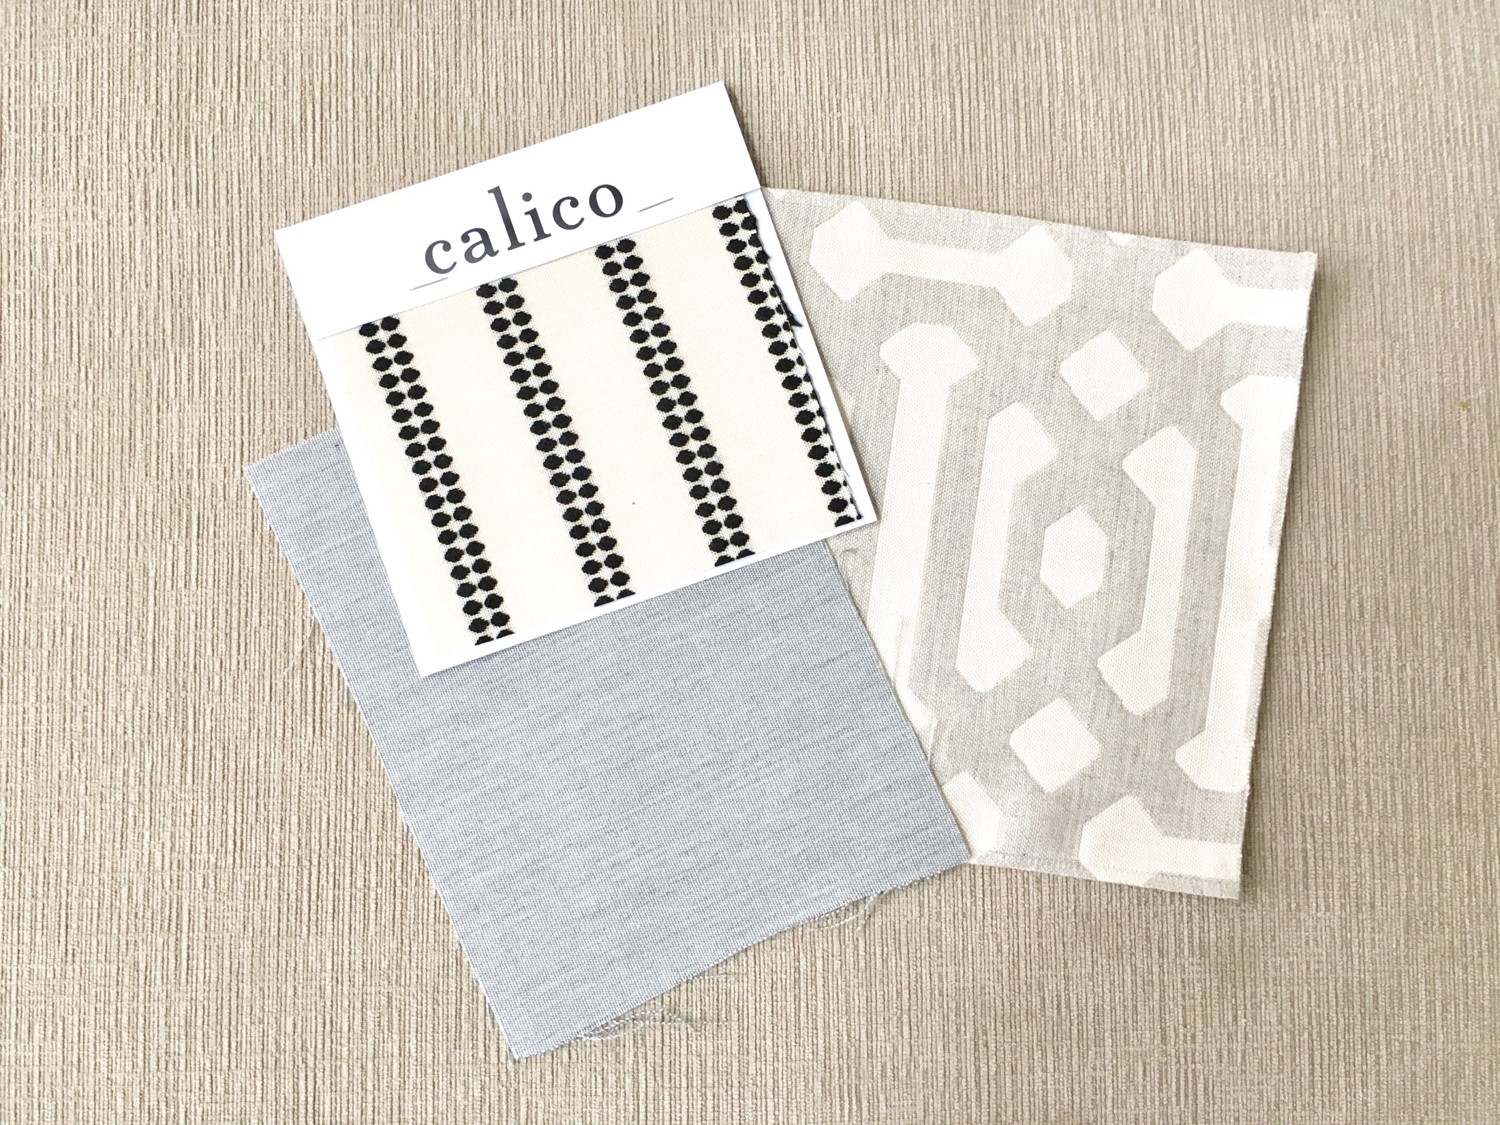 Calico Sunbrella Performance Fabric Swatches for Custom Pillow Covers - Farmhouse Redefined